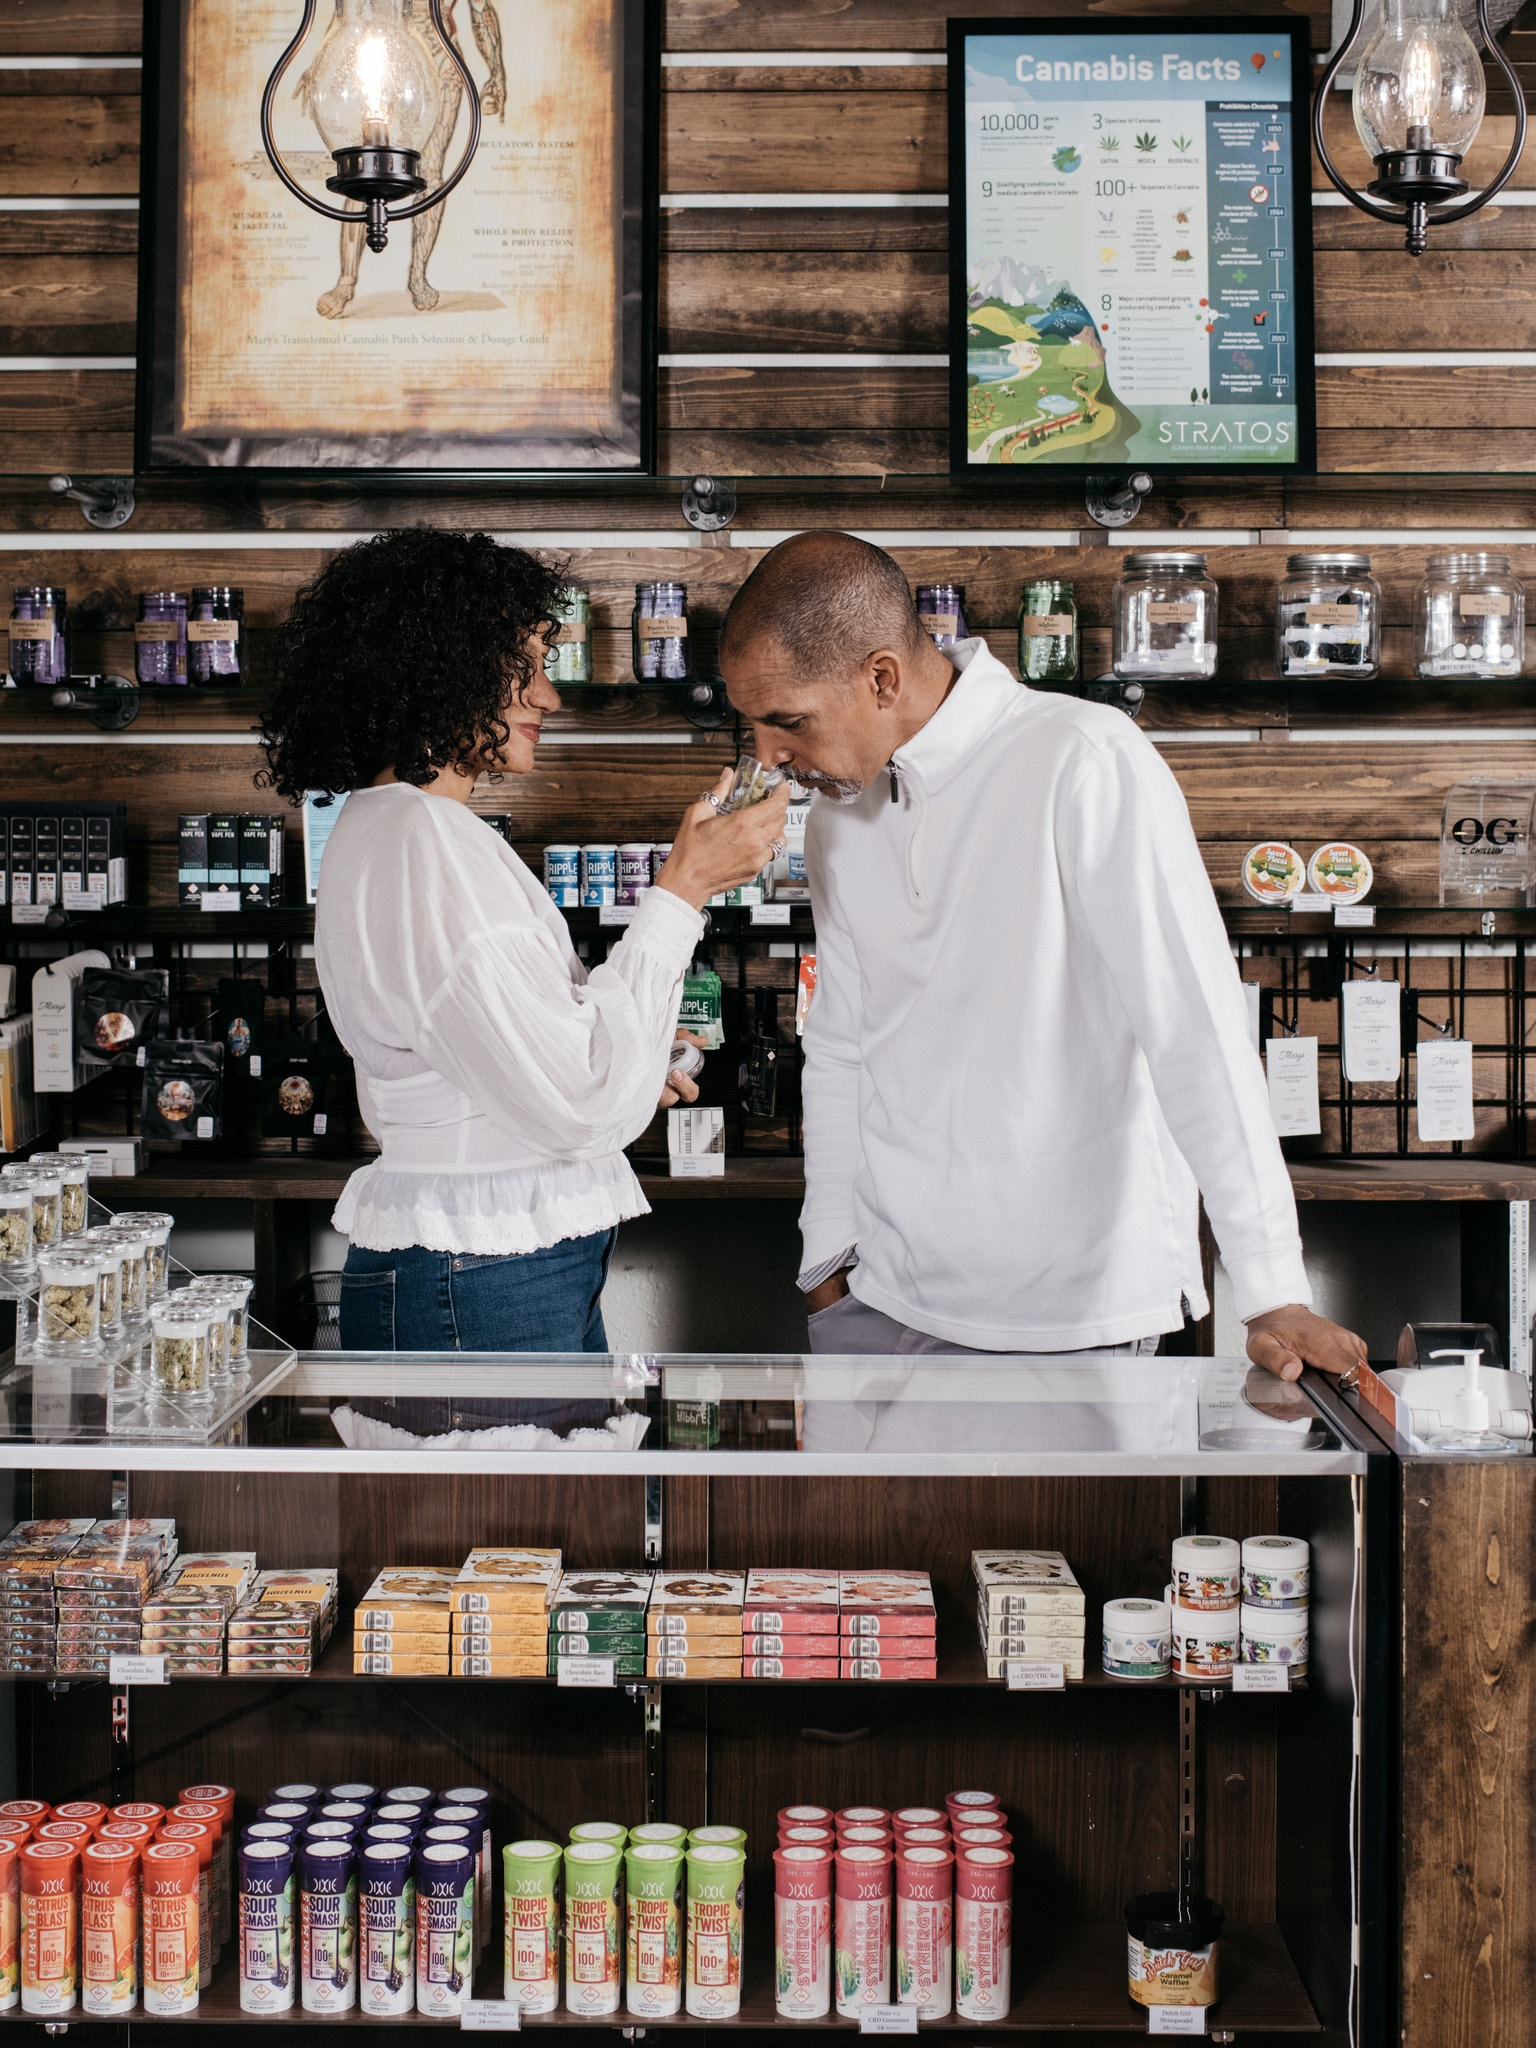 Wanda James and Scott Durrah, who became the first African-Americans to obtain a license to sell marijuana in America, at their dispensary, Simply Pure, in Denver.CreditBenjamin Rasmussen for The New York Times